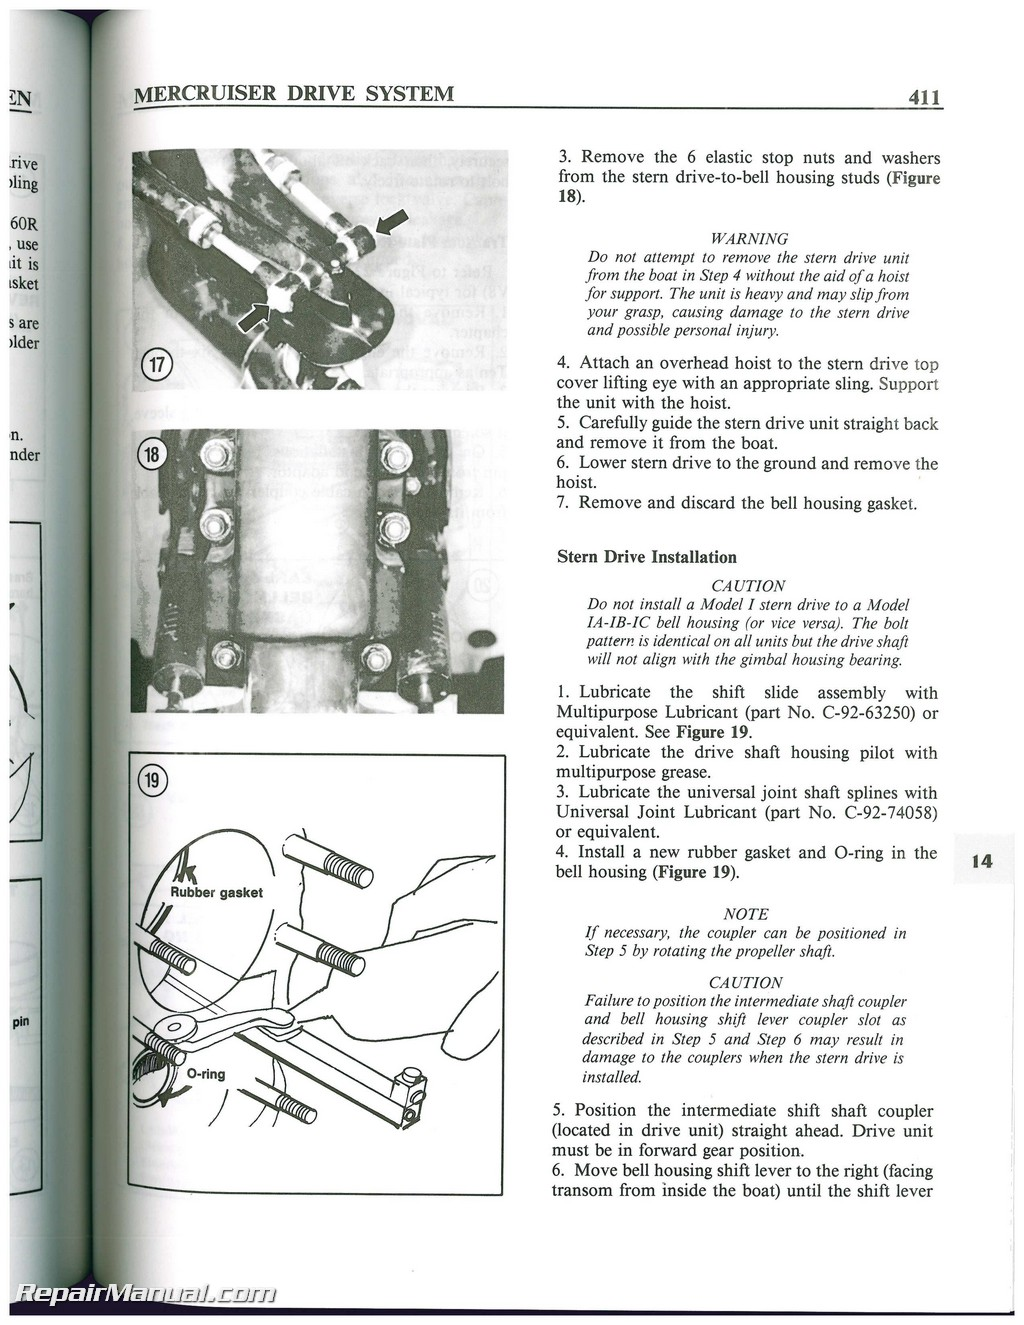 mercruiser stern drive boat engine shop manual 1964 1987 rh repairmanual com Mercruiser Manuals PDF Mercruiser Manuals PDF